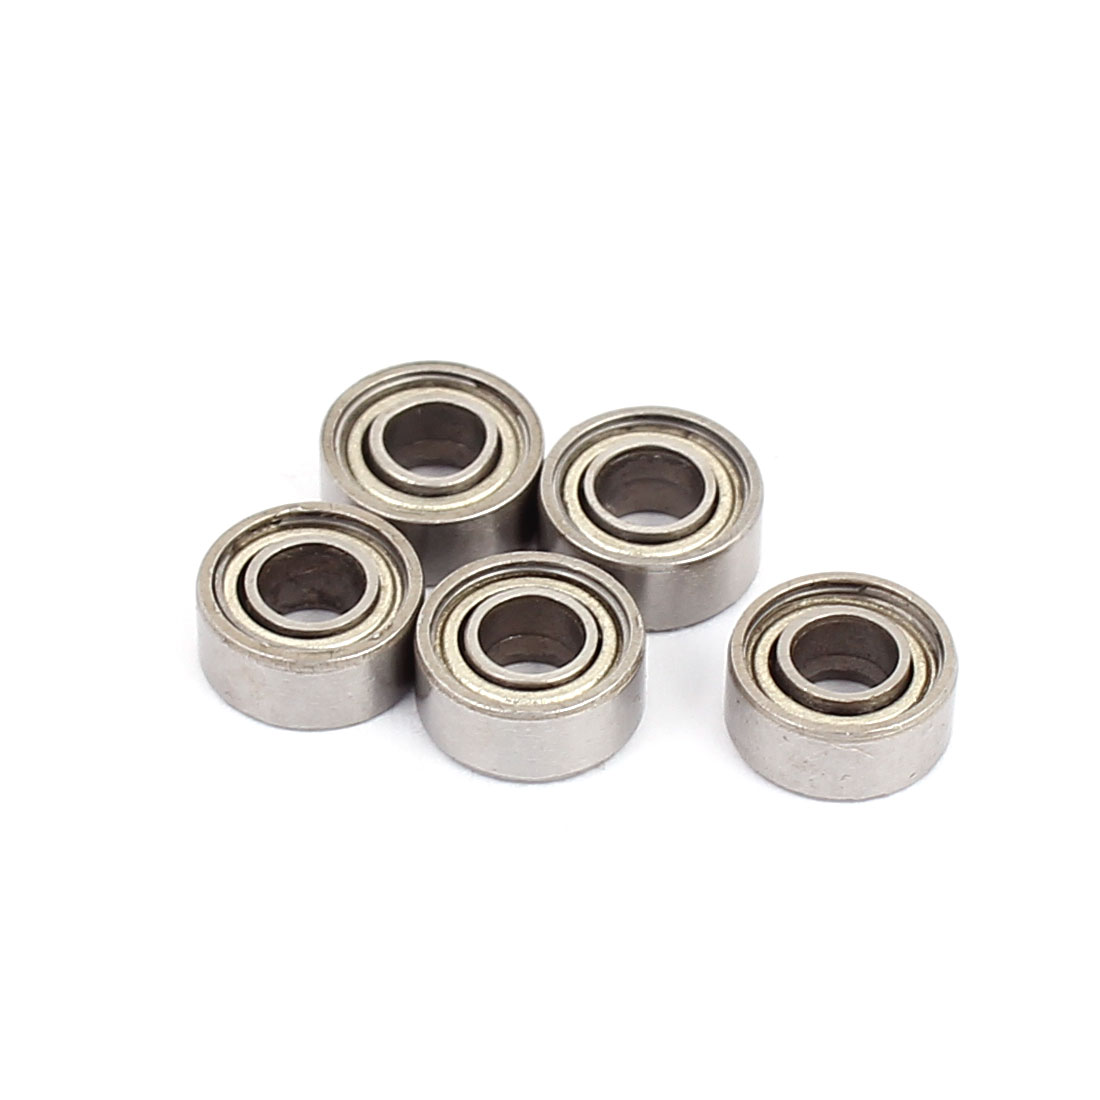 S683Z Double Shielded Deep Groove Ball Bearing Silver Tone 7mm x3mm x3mm 5pcs